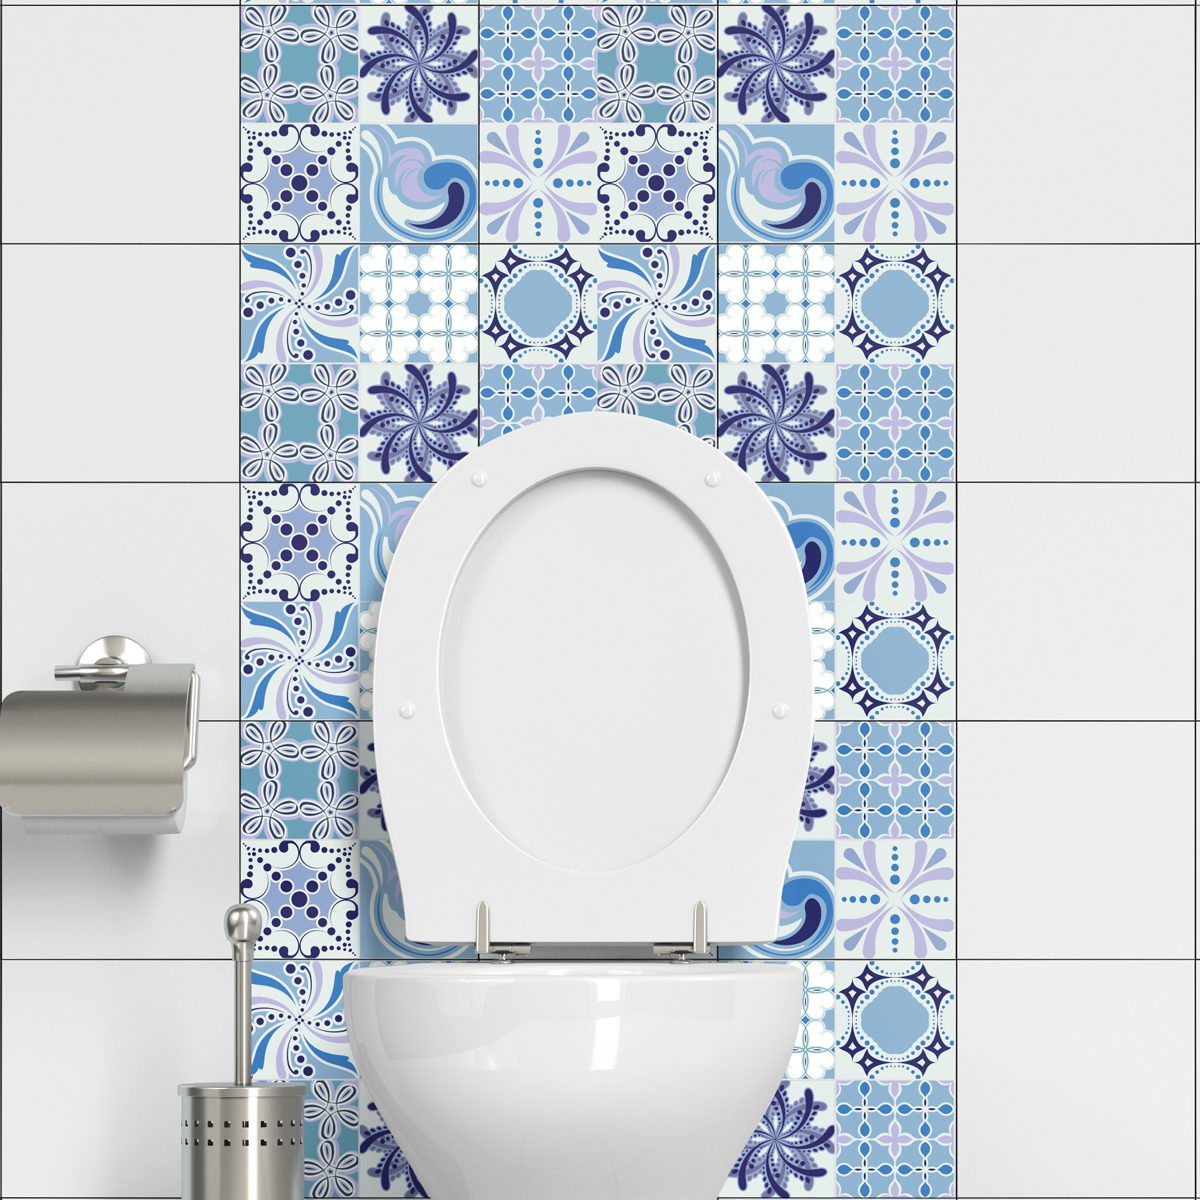 9 stickers carreaux de ciment capoeira salle de bain et wc salle de bain ambiance sticker. Black Bedroom Furniture Sets. Home Design Ideas